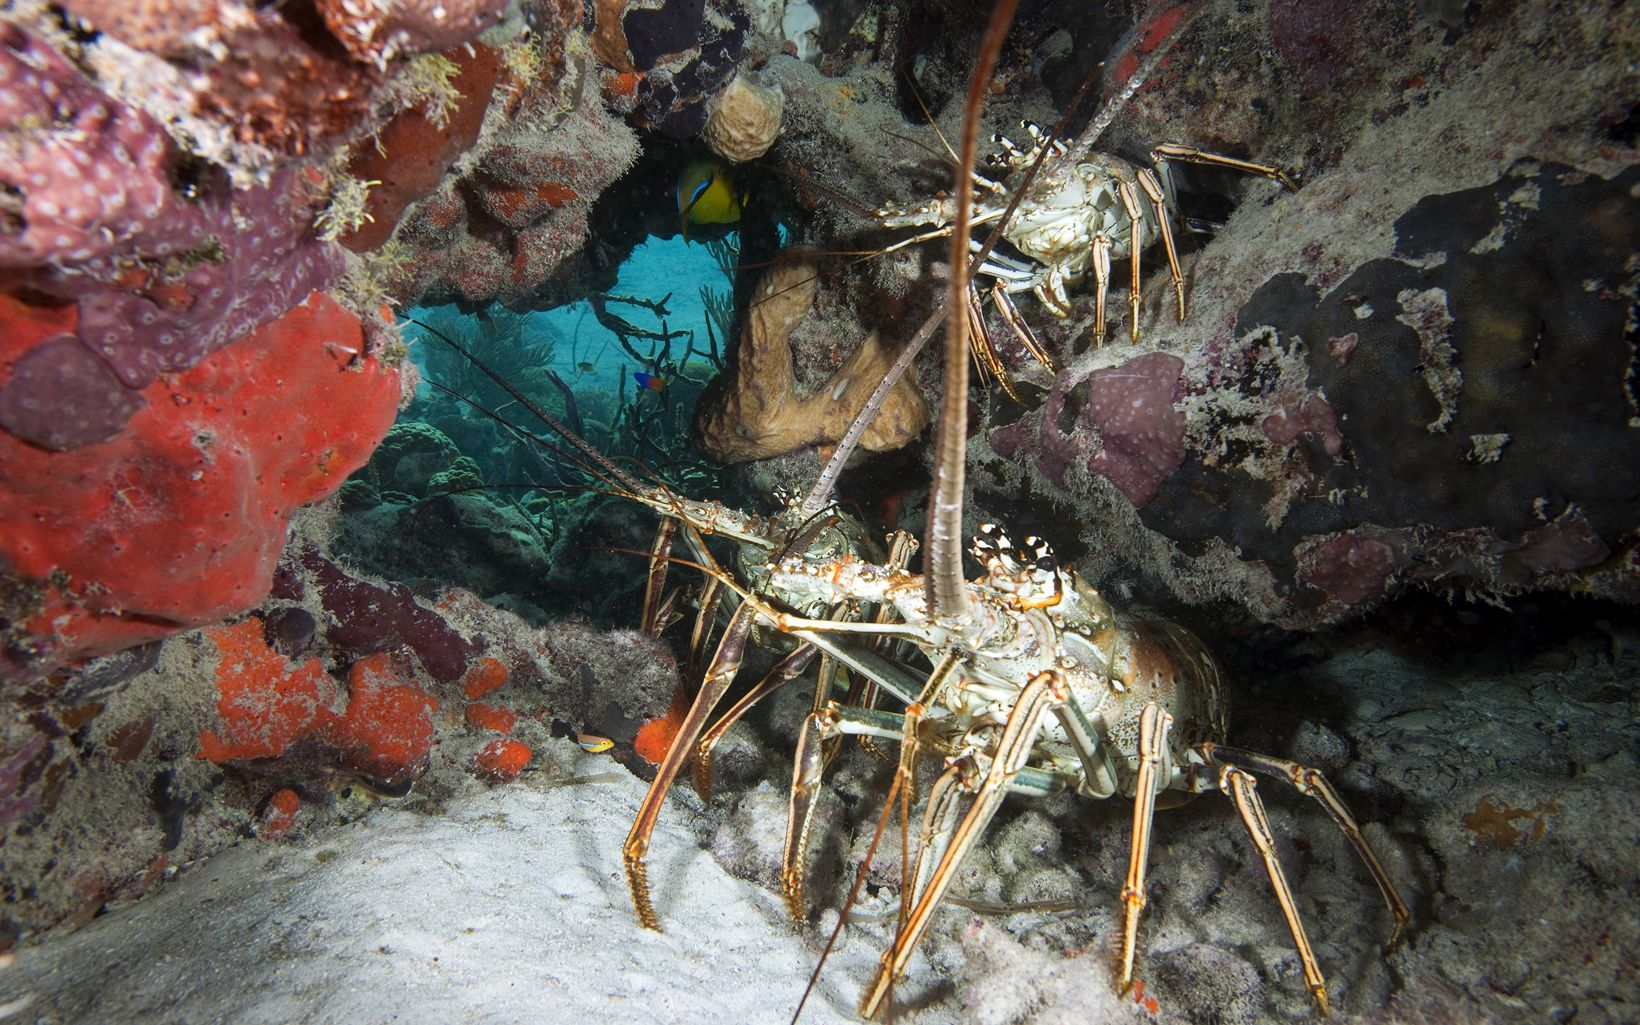 A spiny lobster in the Exuma Cays